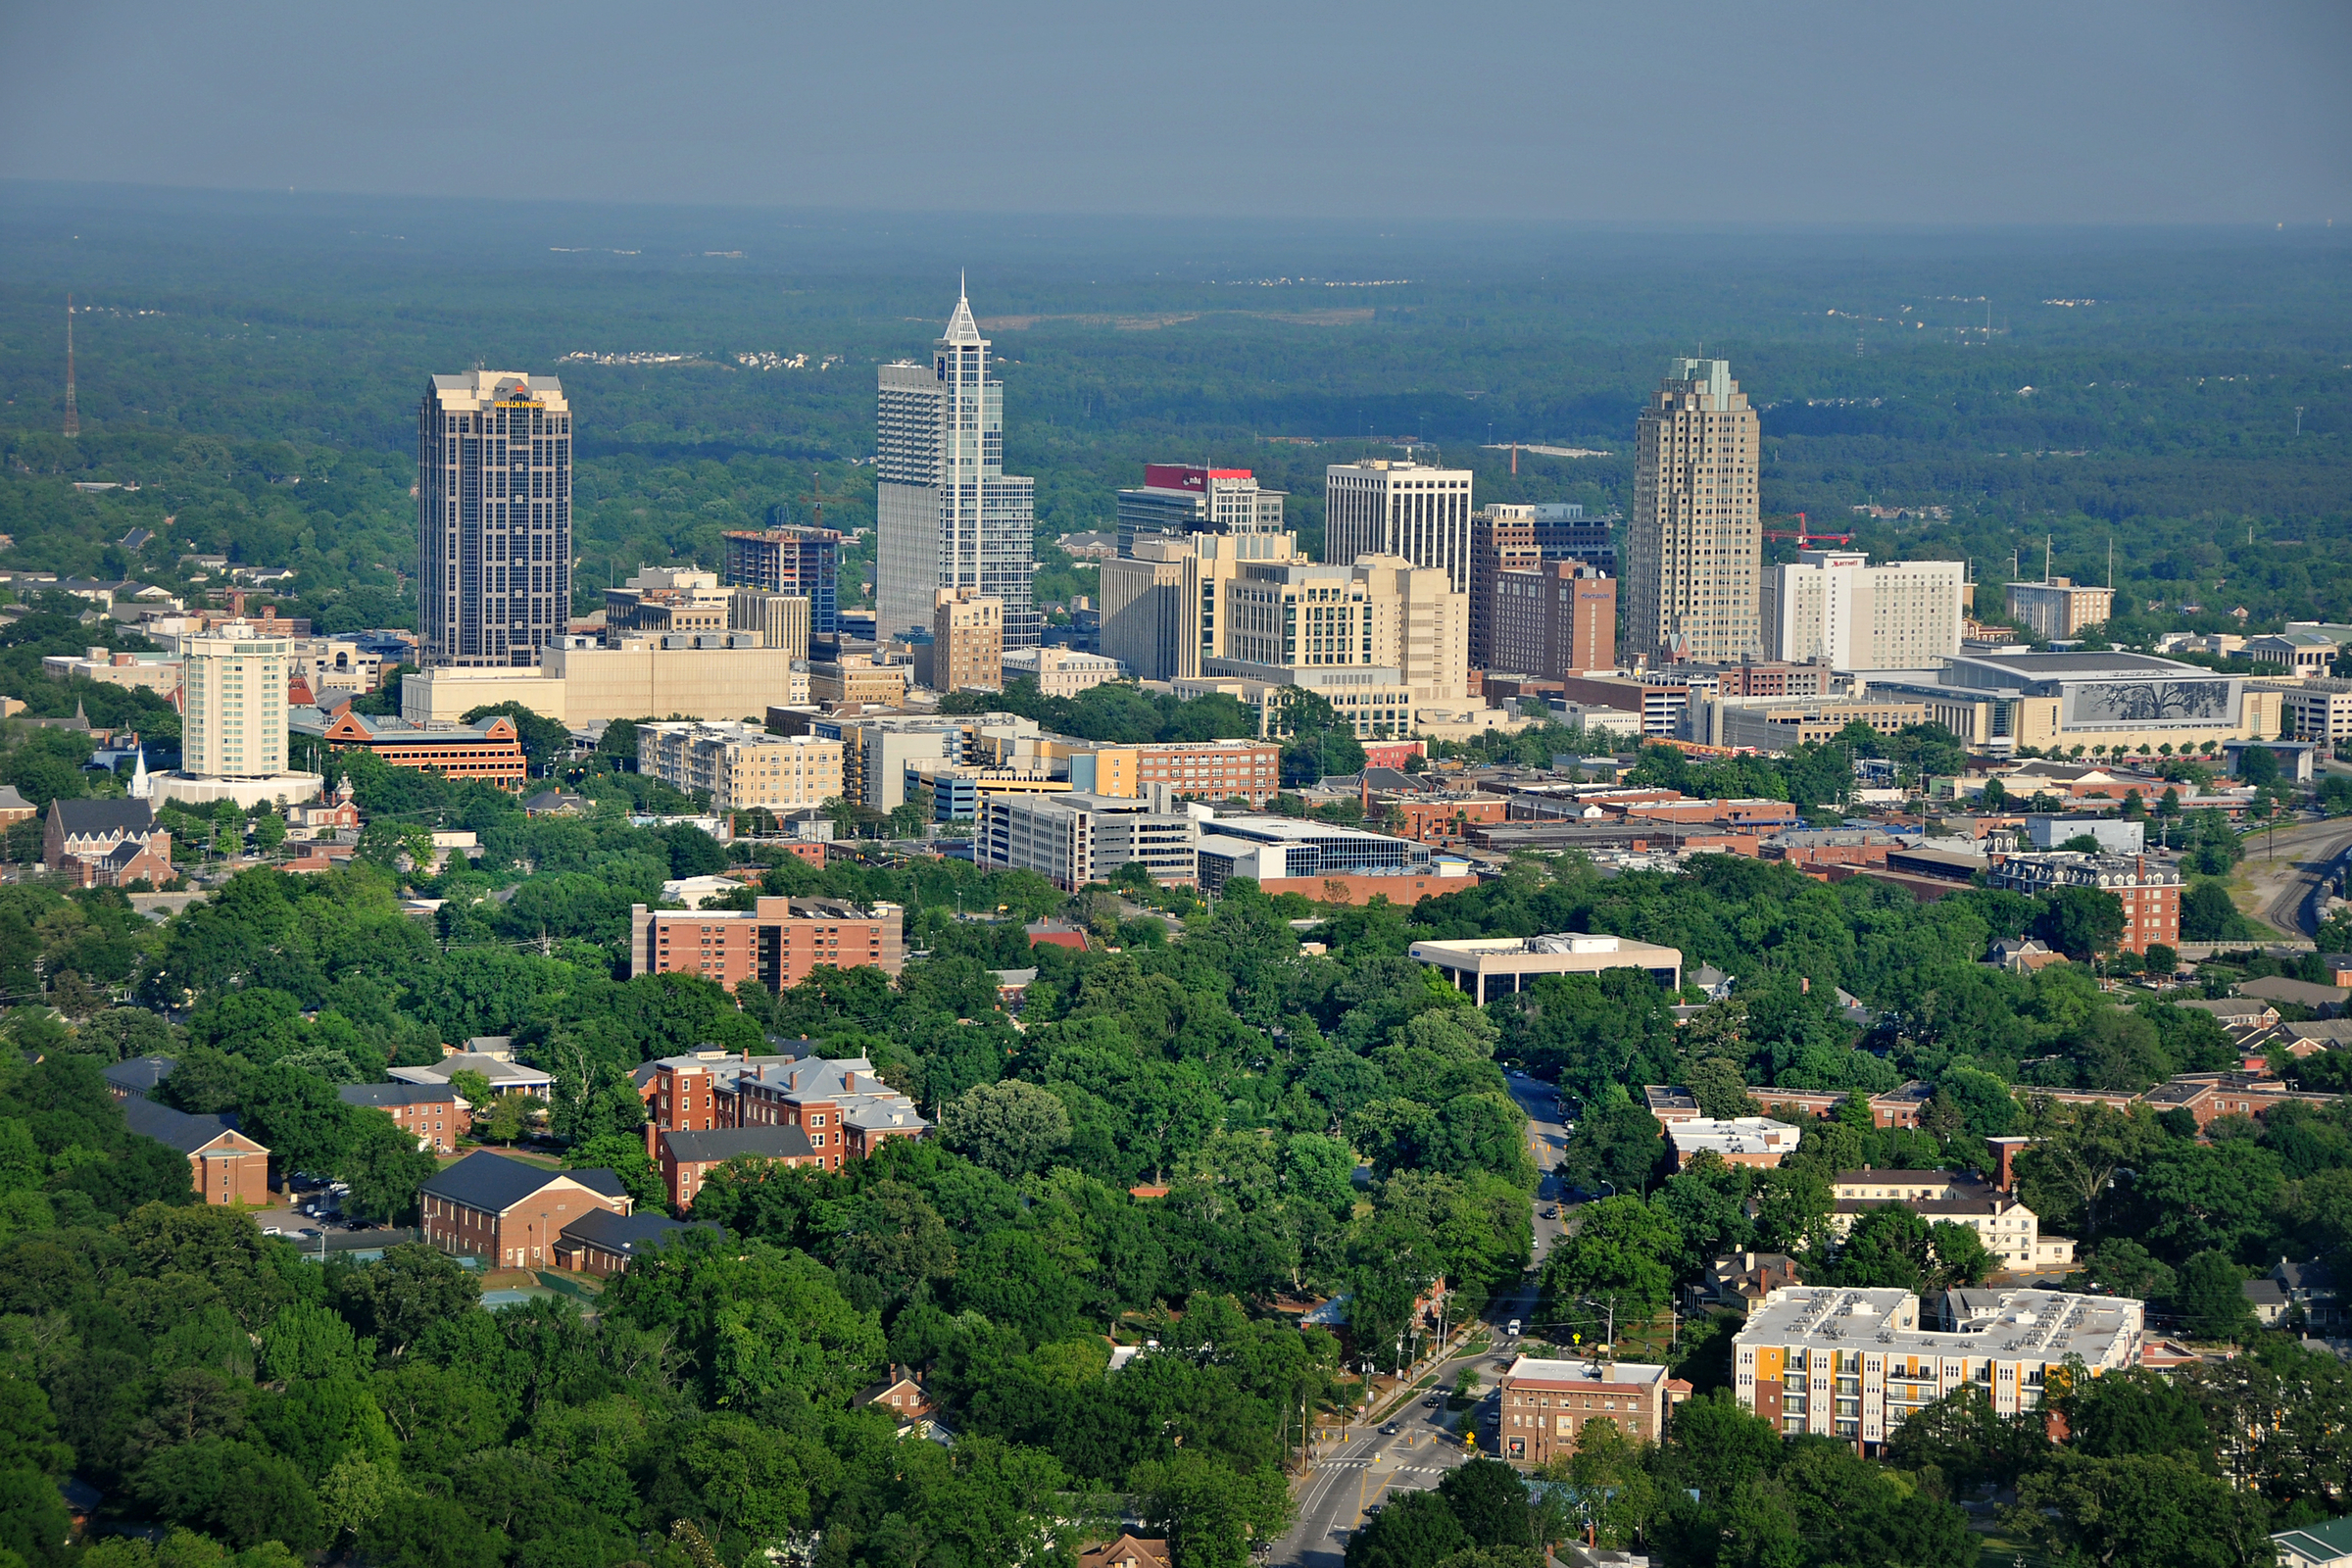 Aerial view of downtown Raleigh, as seen from the northwest, looking southeast.